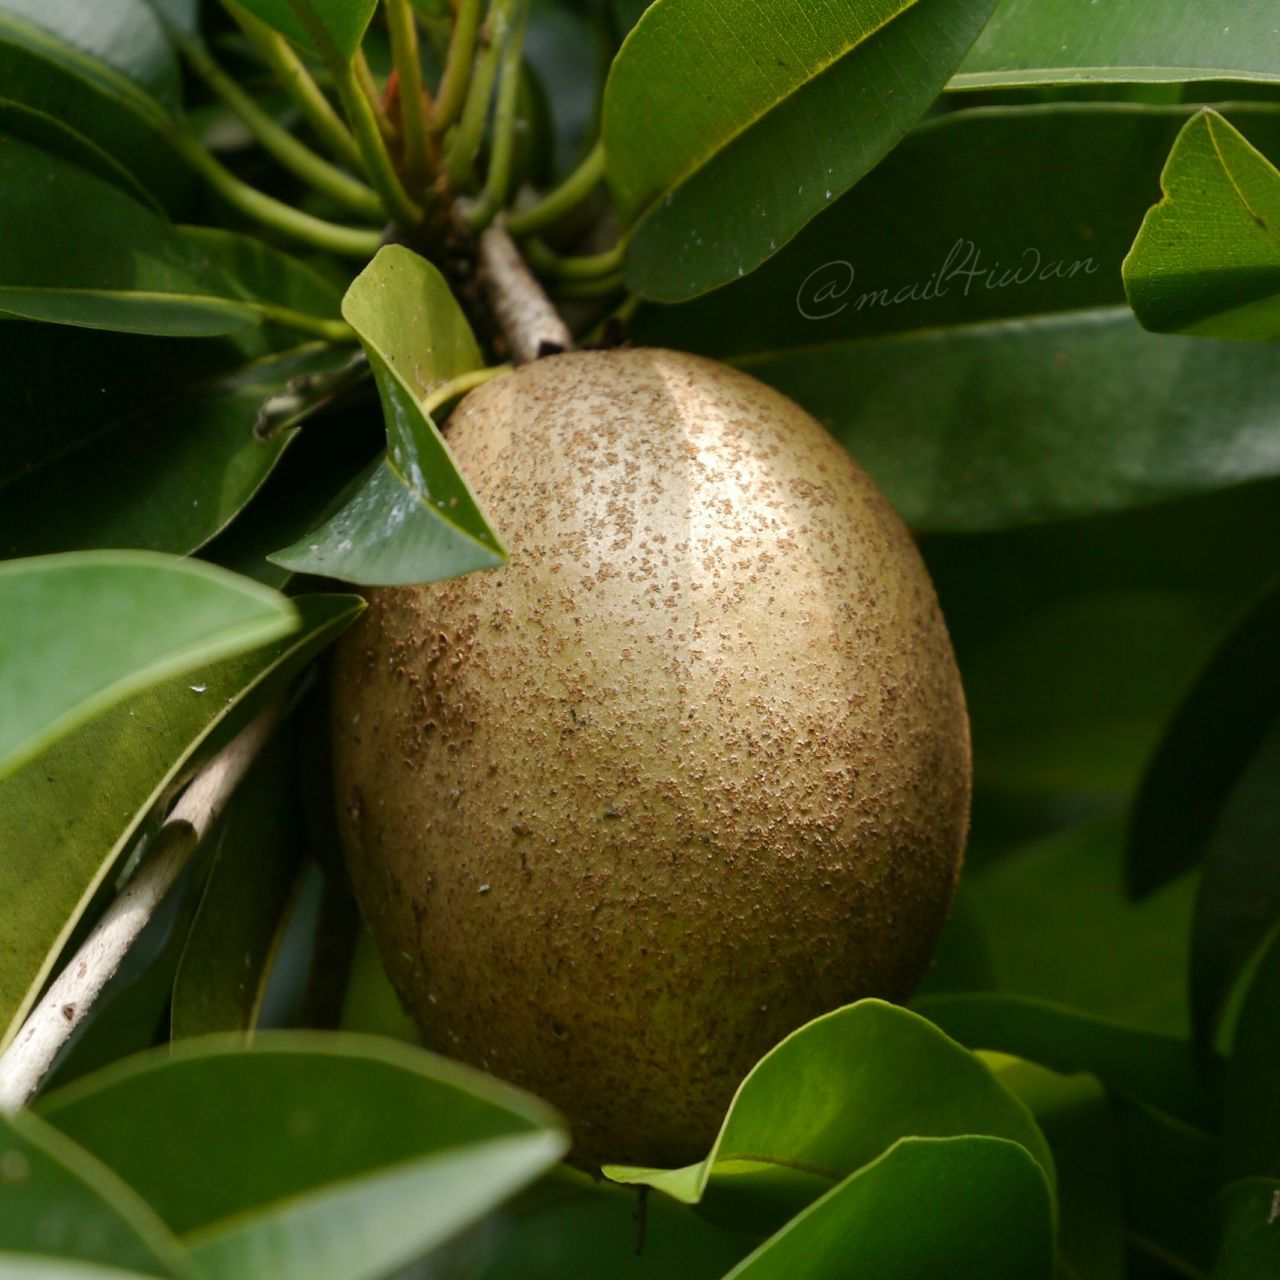 Fruit Freshness Growth Green Color Outdoors Plant Nature Close-up Food Leaf Agriculture Lumix Pure And Untouched (raw Image)